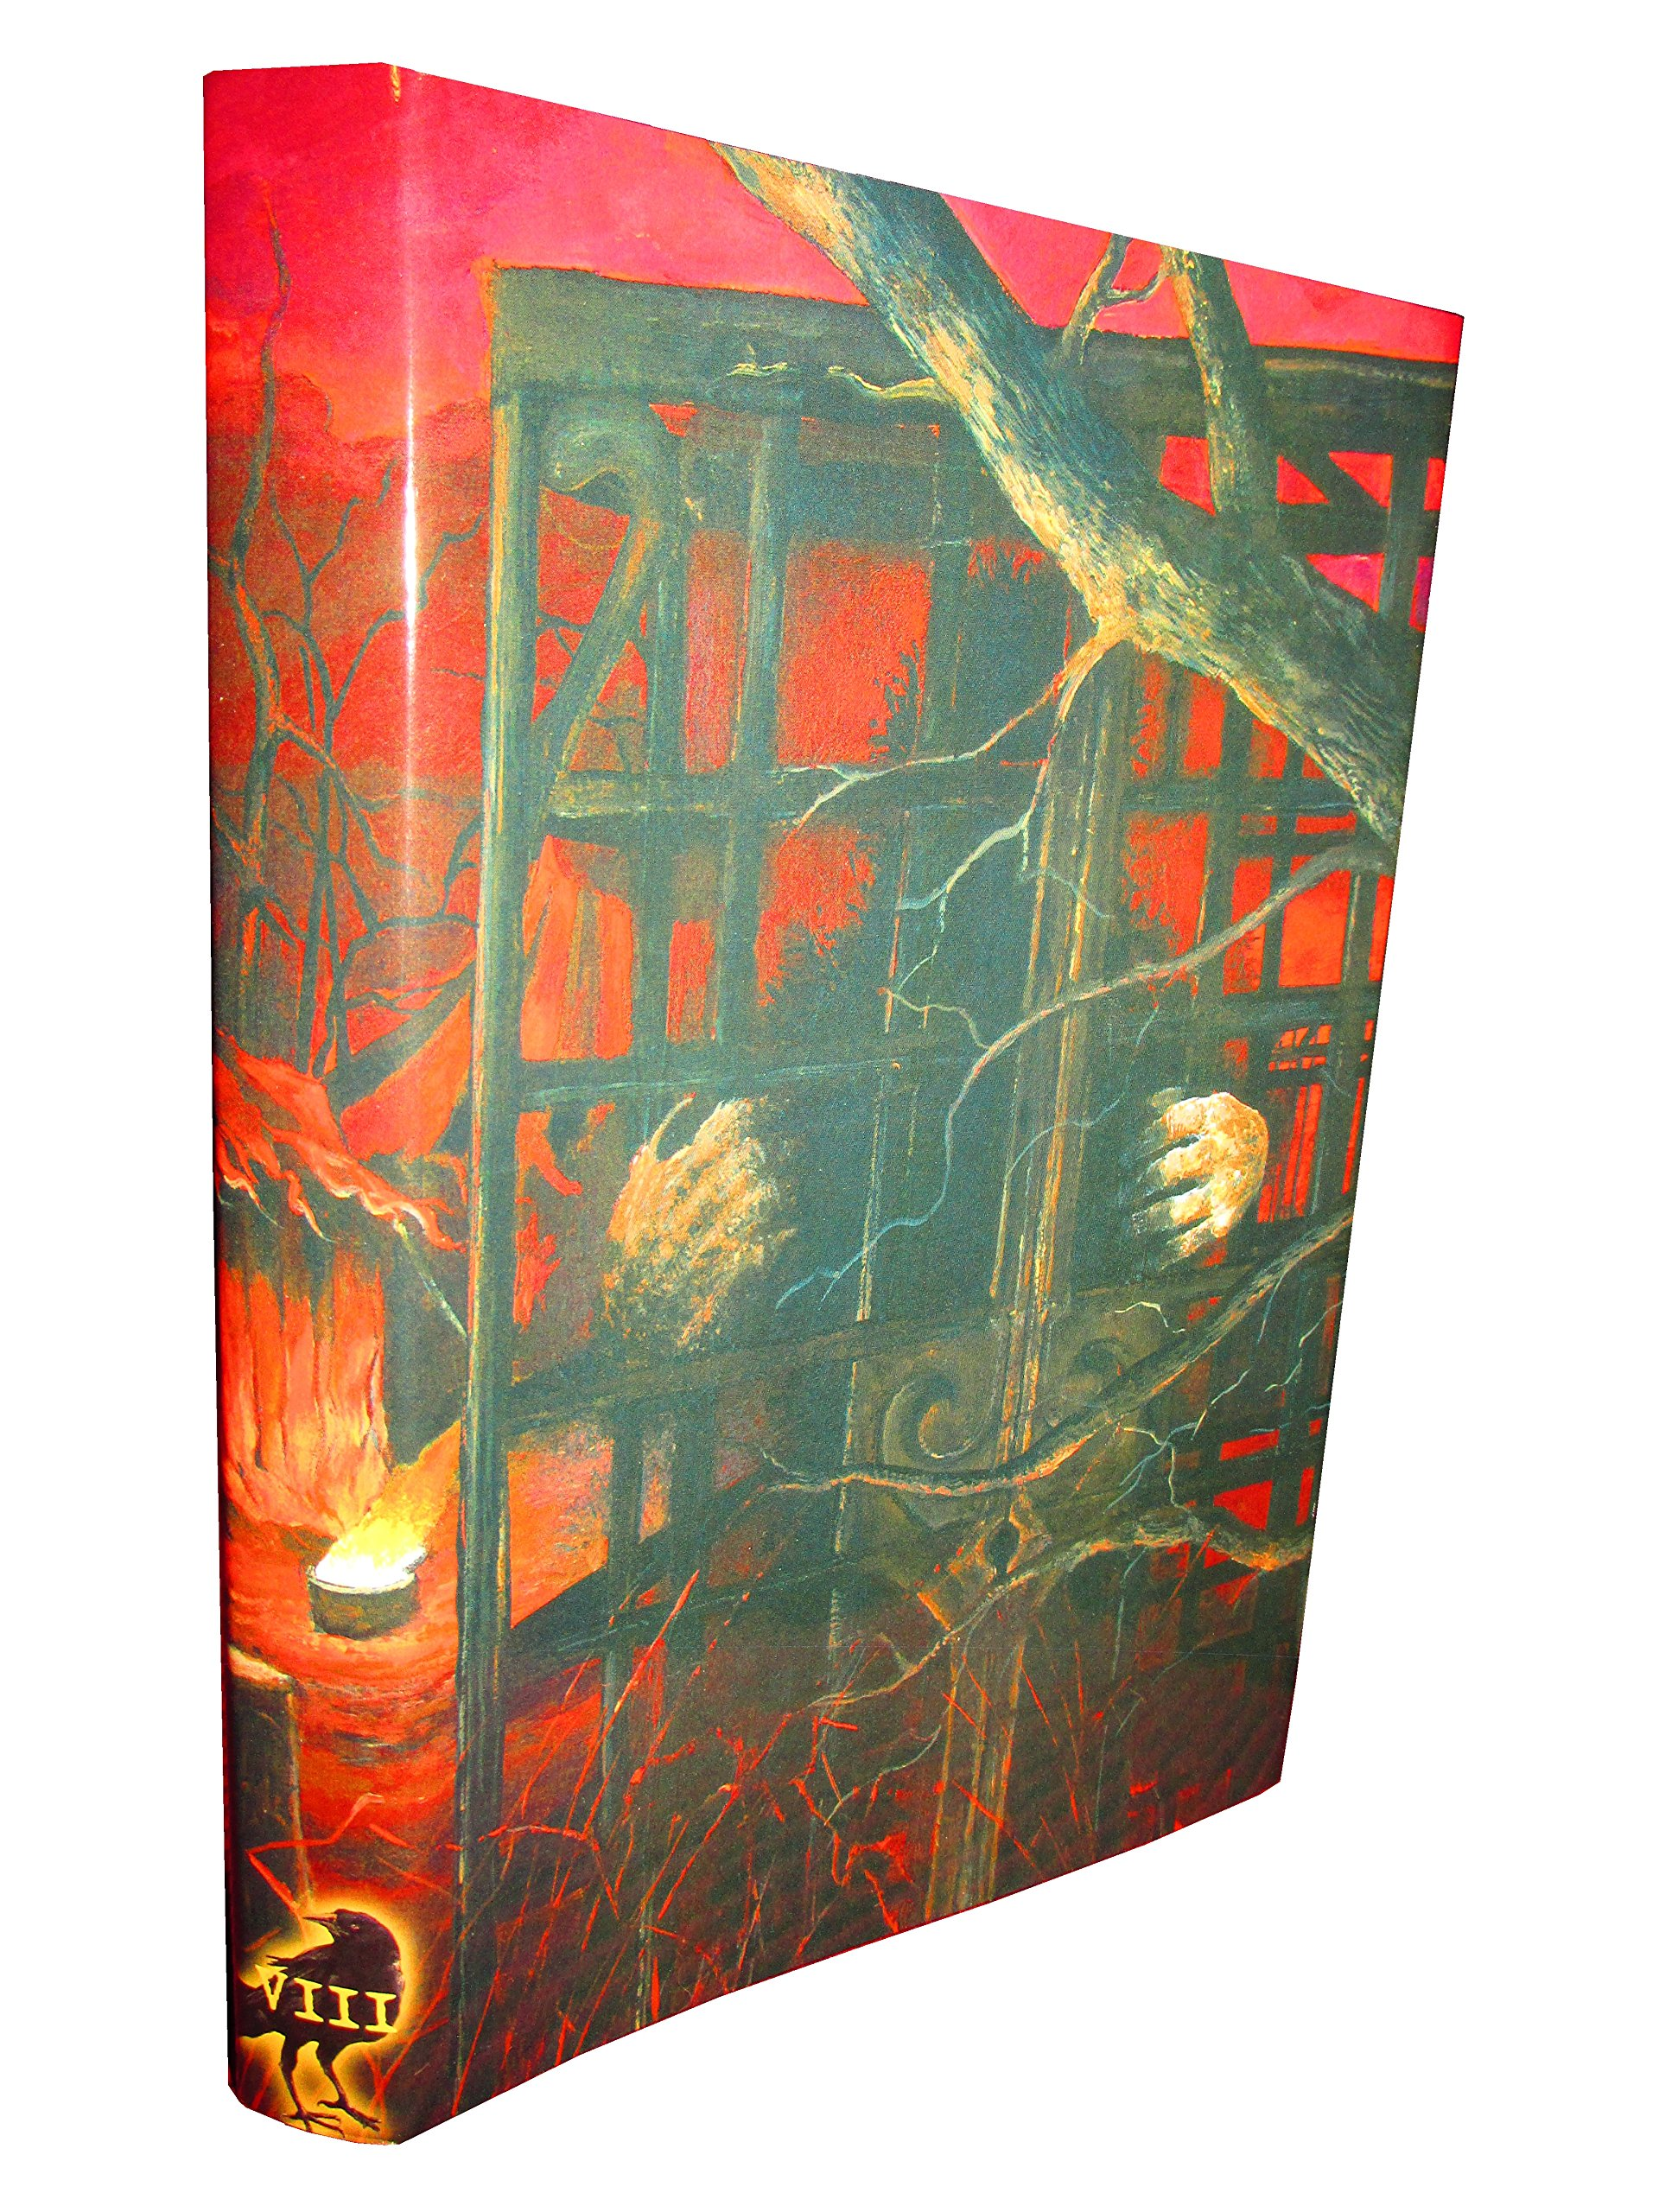 Download STEPHEN KING NEW COVER SERIES No. 28 Dark Tower Wind Through the Keyhole (Artist Signed, Cover only) pdf epub